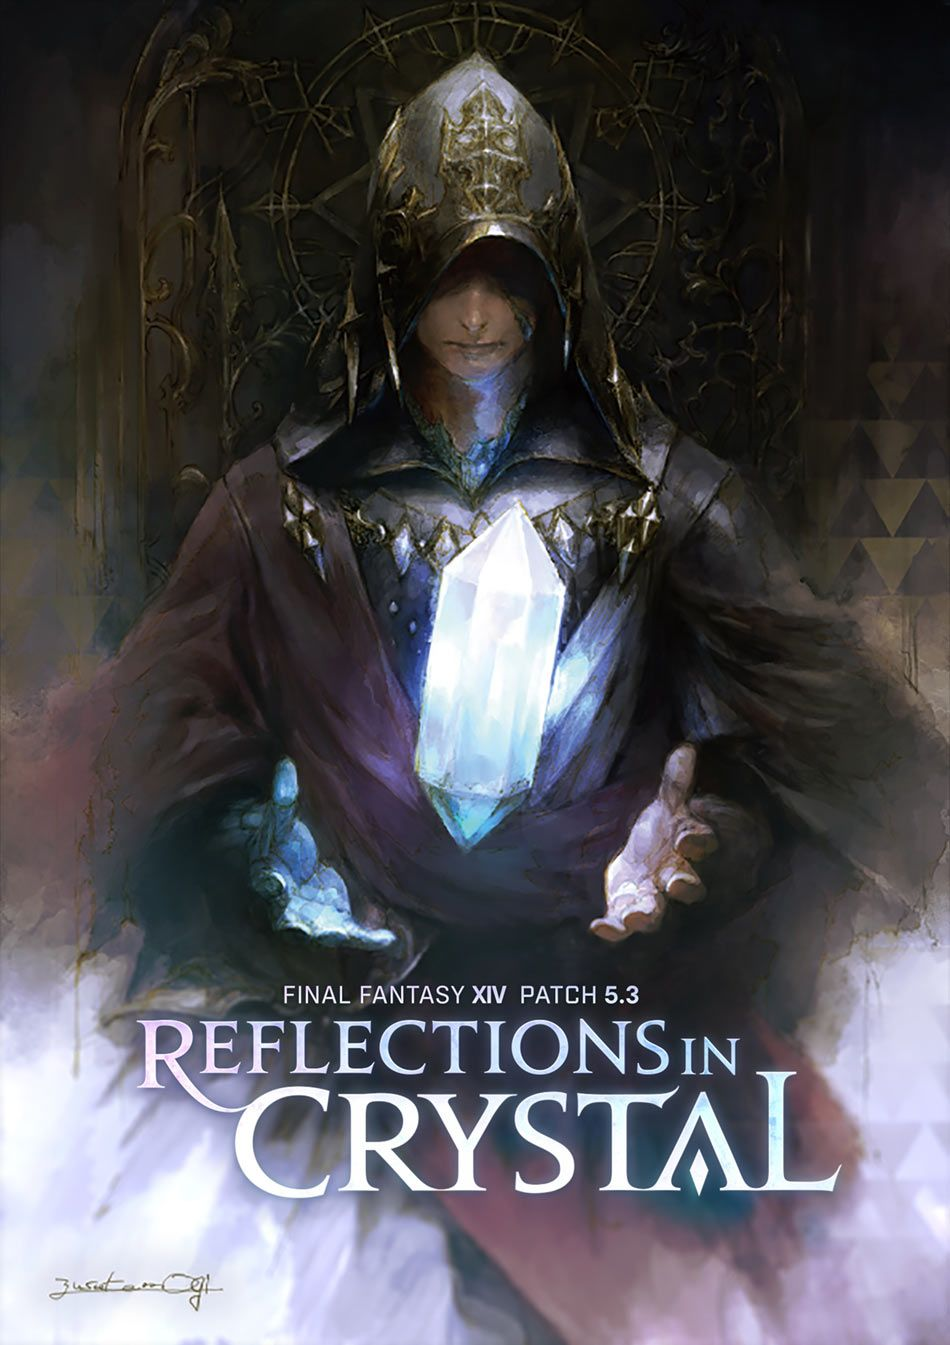 Patch 5.3 Reflections in Crystal Art - Final Fantasy XIV: Shadowbringers Art  Gallery in 2020 | Final fantasy xiv, Final fantasy, Final fantasy 14